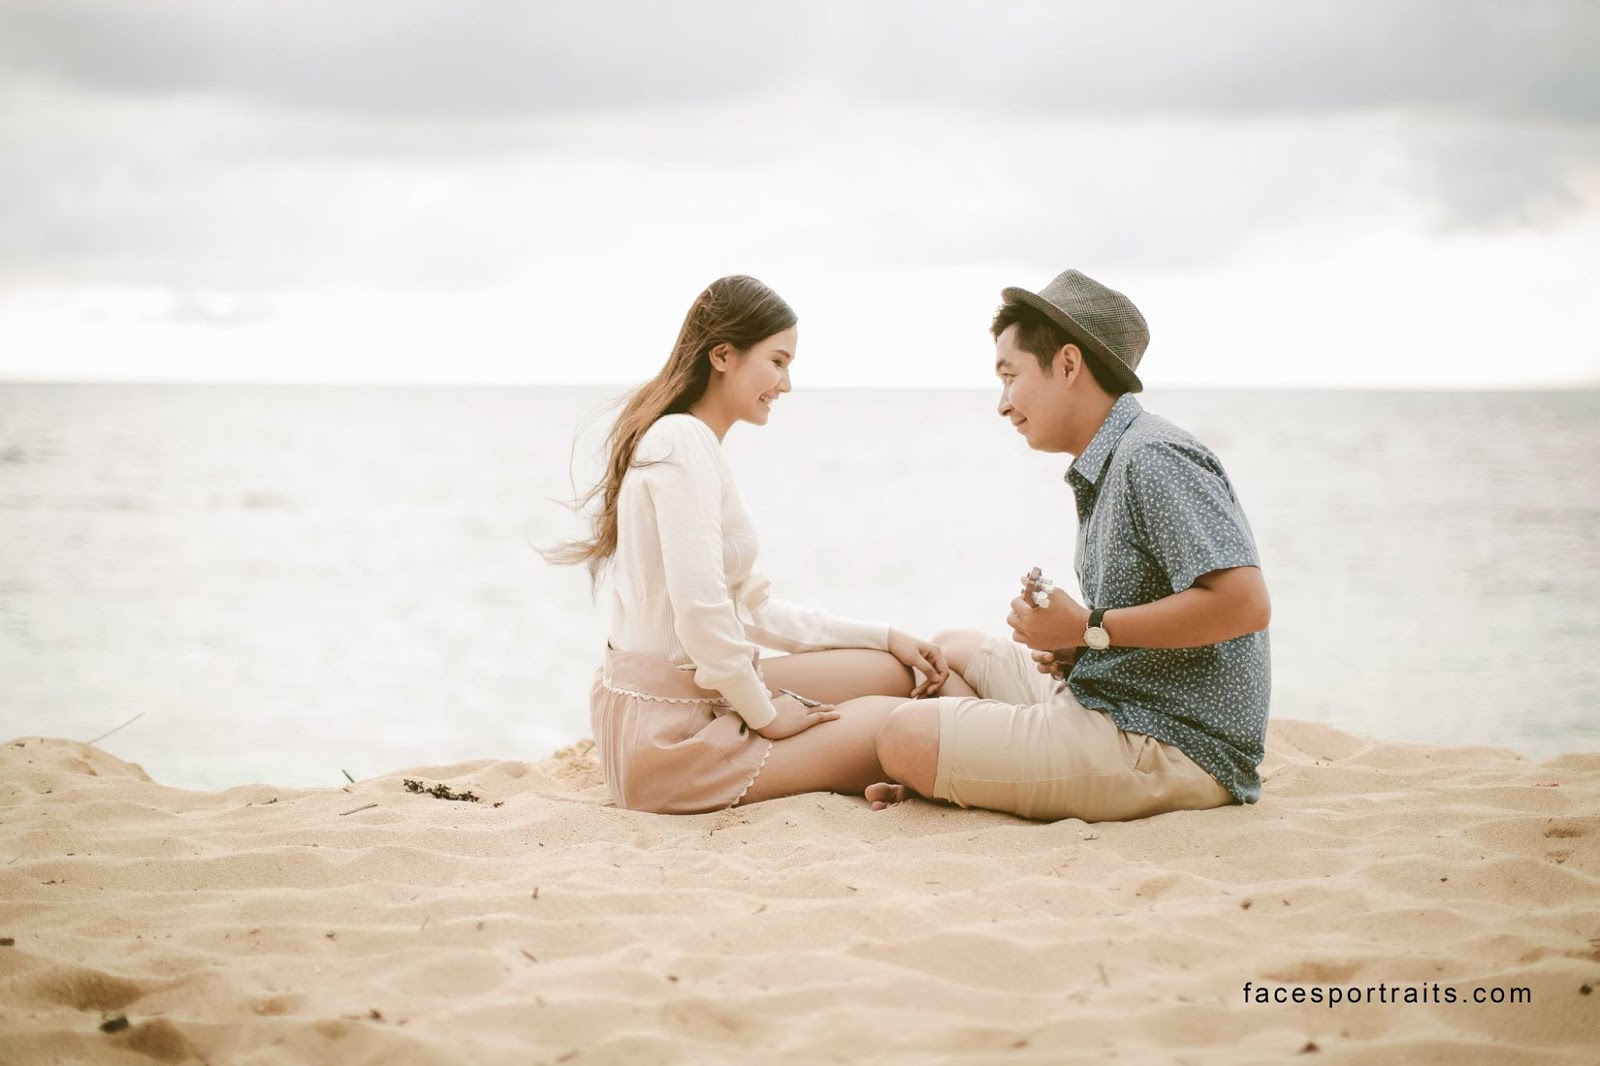 LVLY GREY: Engagement Shoot Inspiration: Faces Portraits